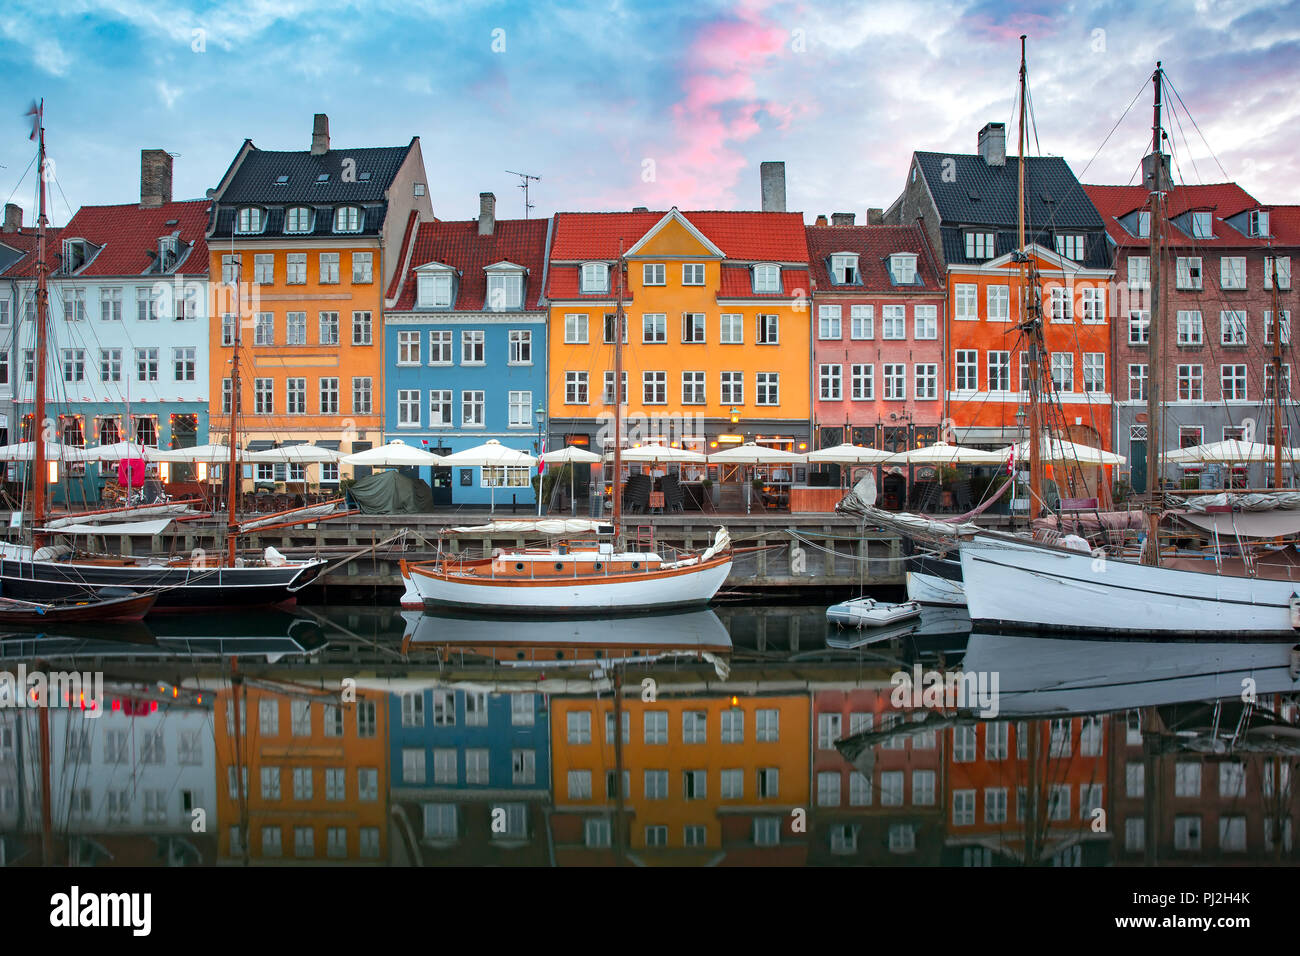 Nyhavn at sunrise in Copenhagen, Denmark. - Stock Image